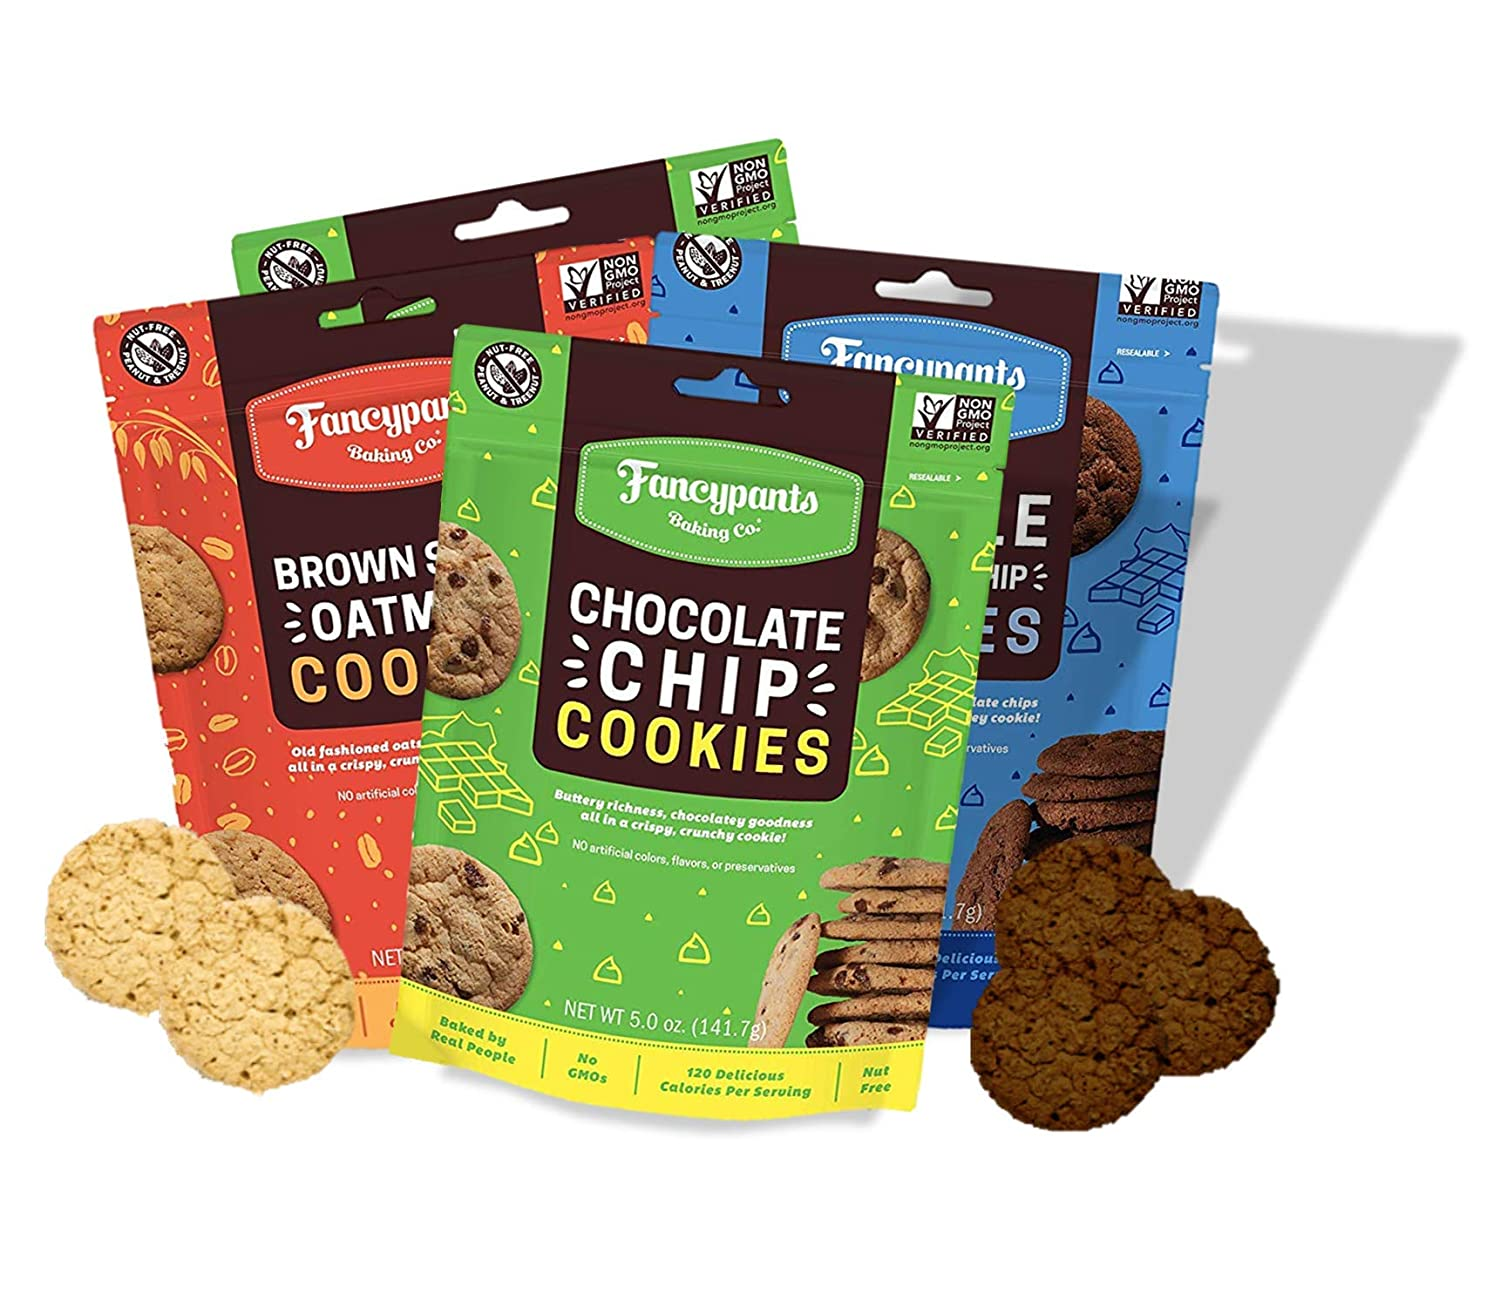 Fancypants Baking Co. Nut Free Cookies | Buttery Delicious & Crunchy Variety (2 Chocolate Chips, 1 Double Dutch Chocolate Chip, 1 Brown Sugar Oatmeal) | Non-GMO Bagged Cookies 4 pack (5oz)